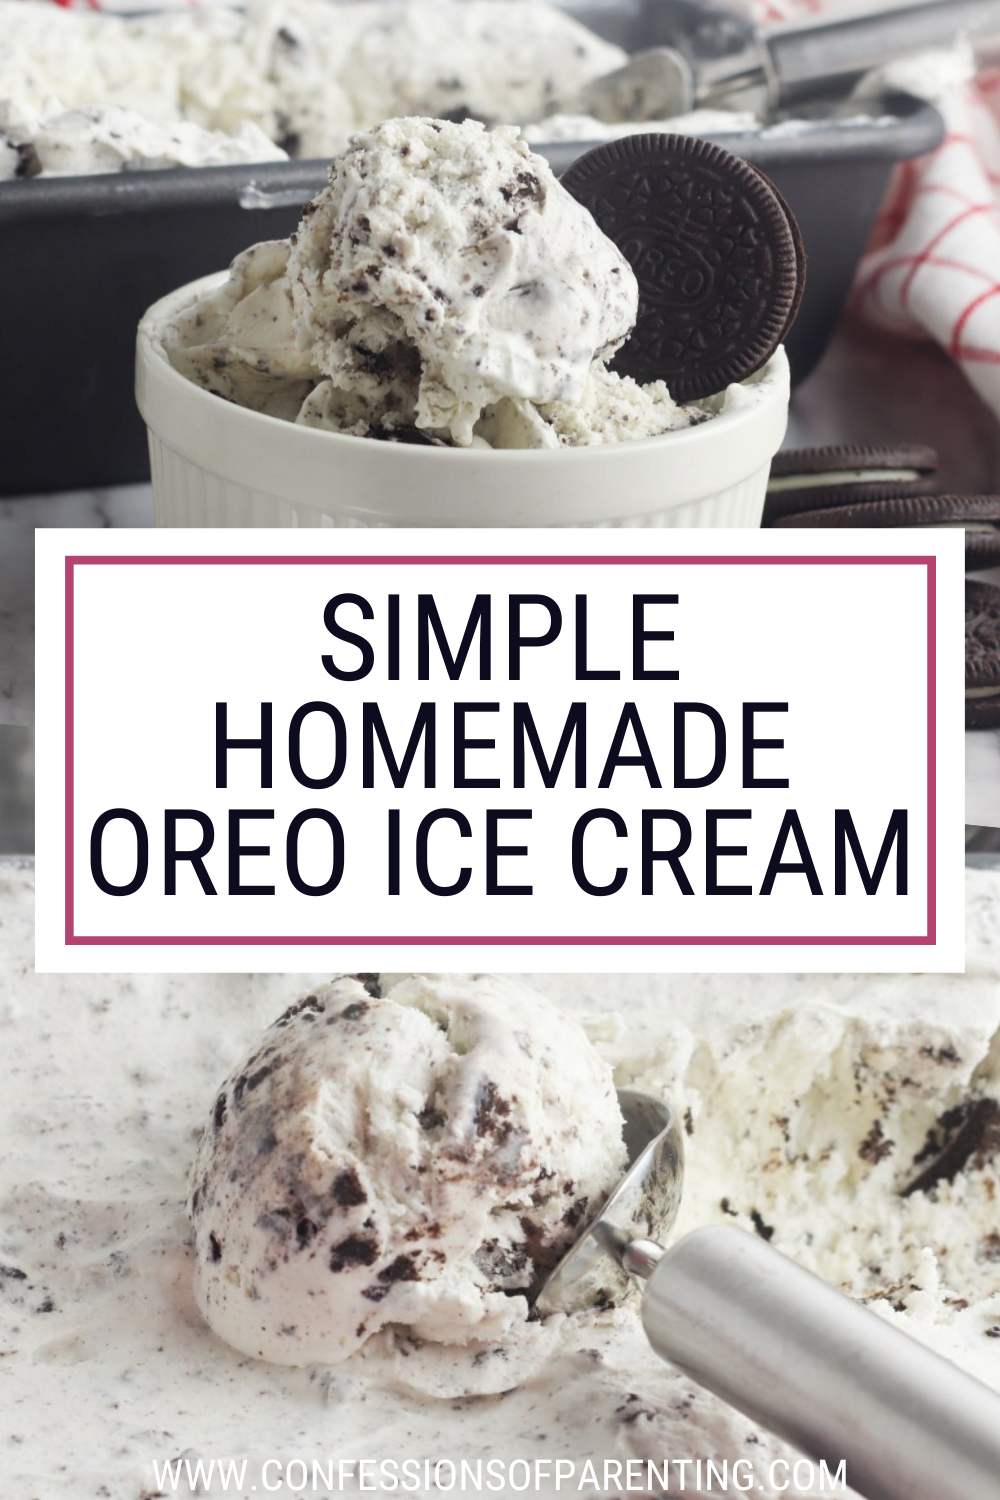 The Best Homemade Oreo Ice Cream Confessions Of Parenting Recipe In 2020 Oreo Ice Cream Homade Ice Cream Recipes Ice Cream Recipes Machine